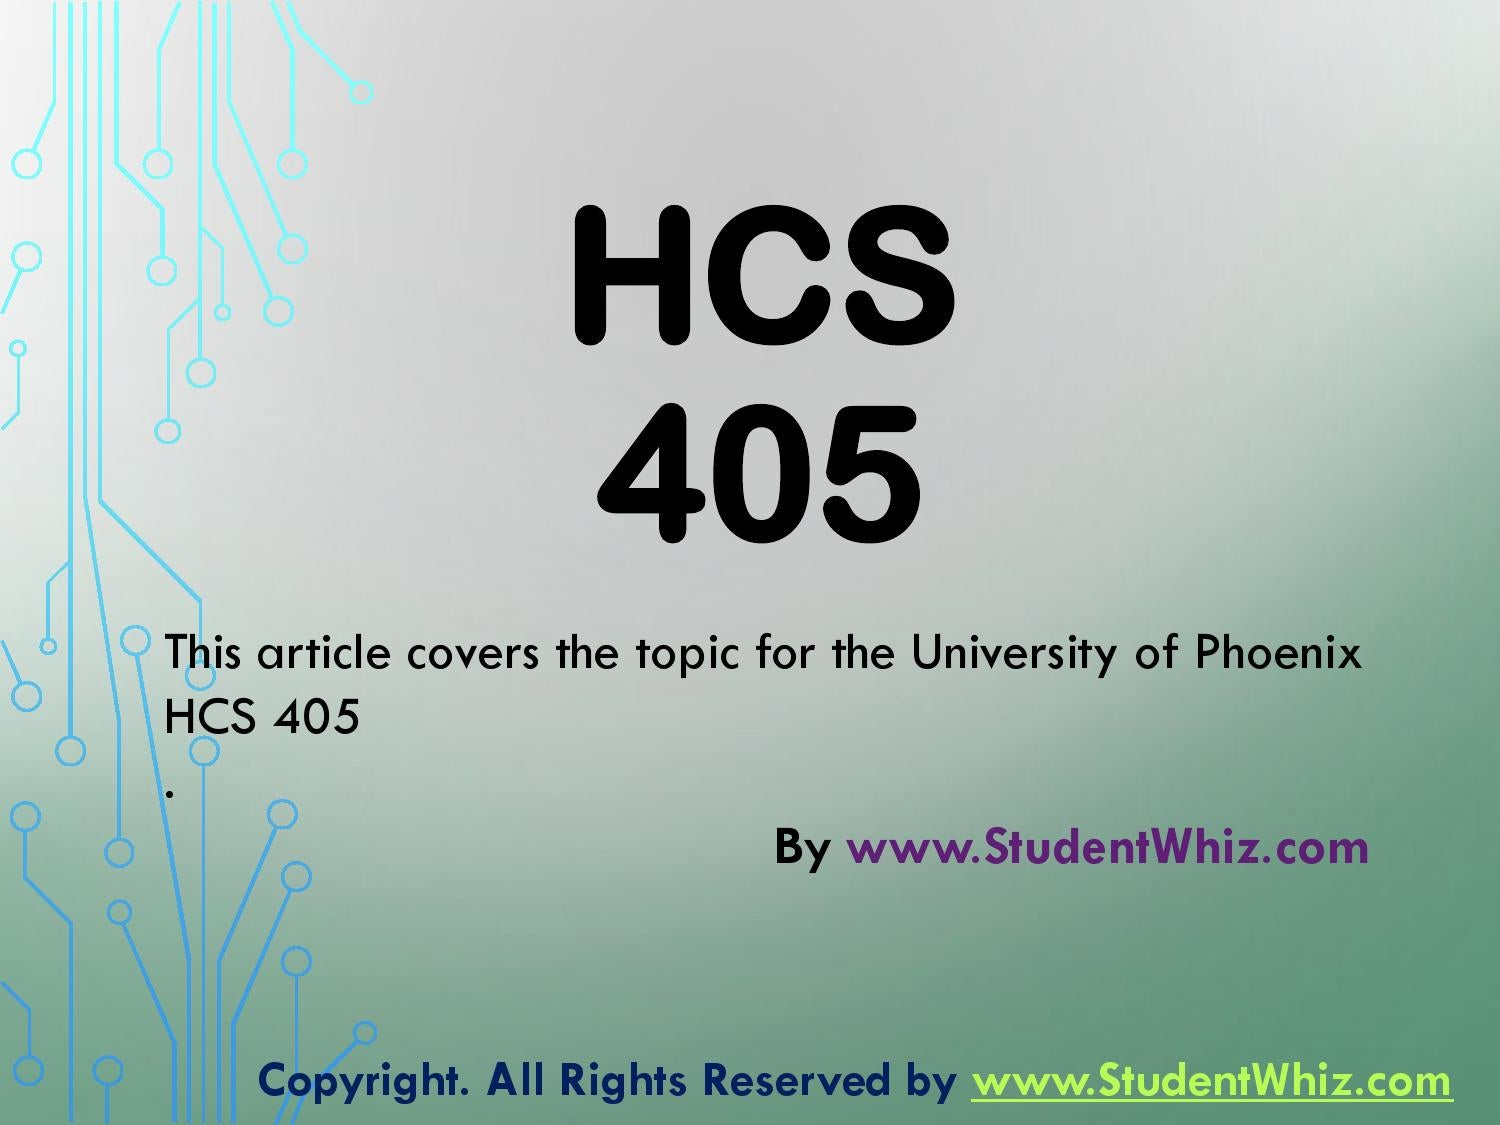 hcs 405 powerpoint sensitivity analysis Hcs 405 week 2 individual assignment week two health care financial terms worksheet resources: university of phoenix material: week two health care financial terms worksheet complete the university of phoenix material: week two health care financial terms worksheet located on the student website.